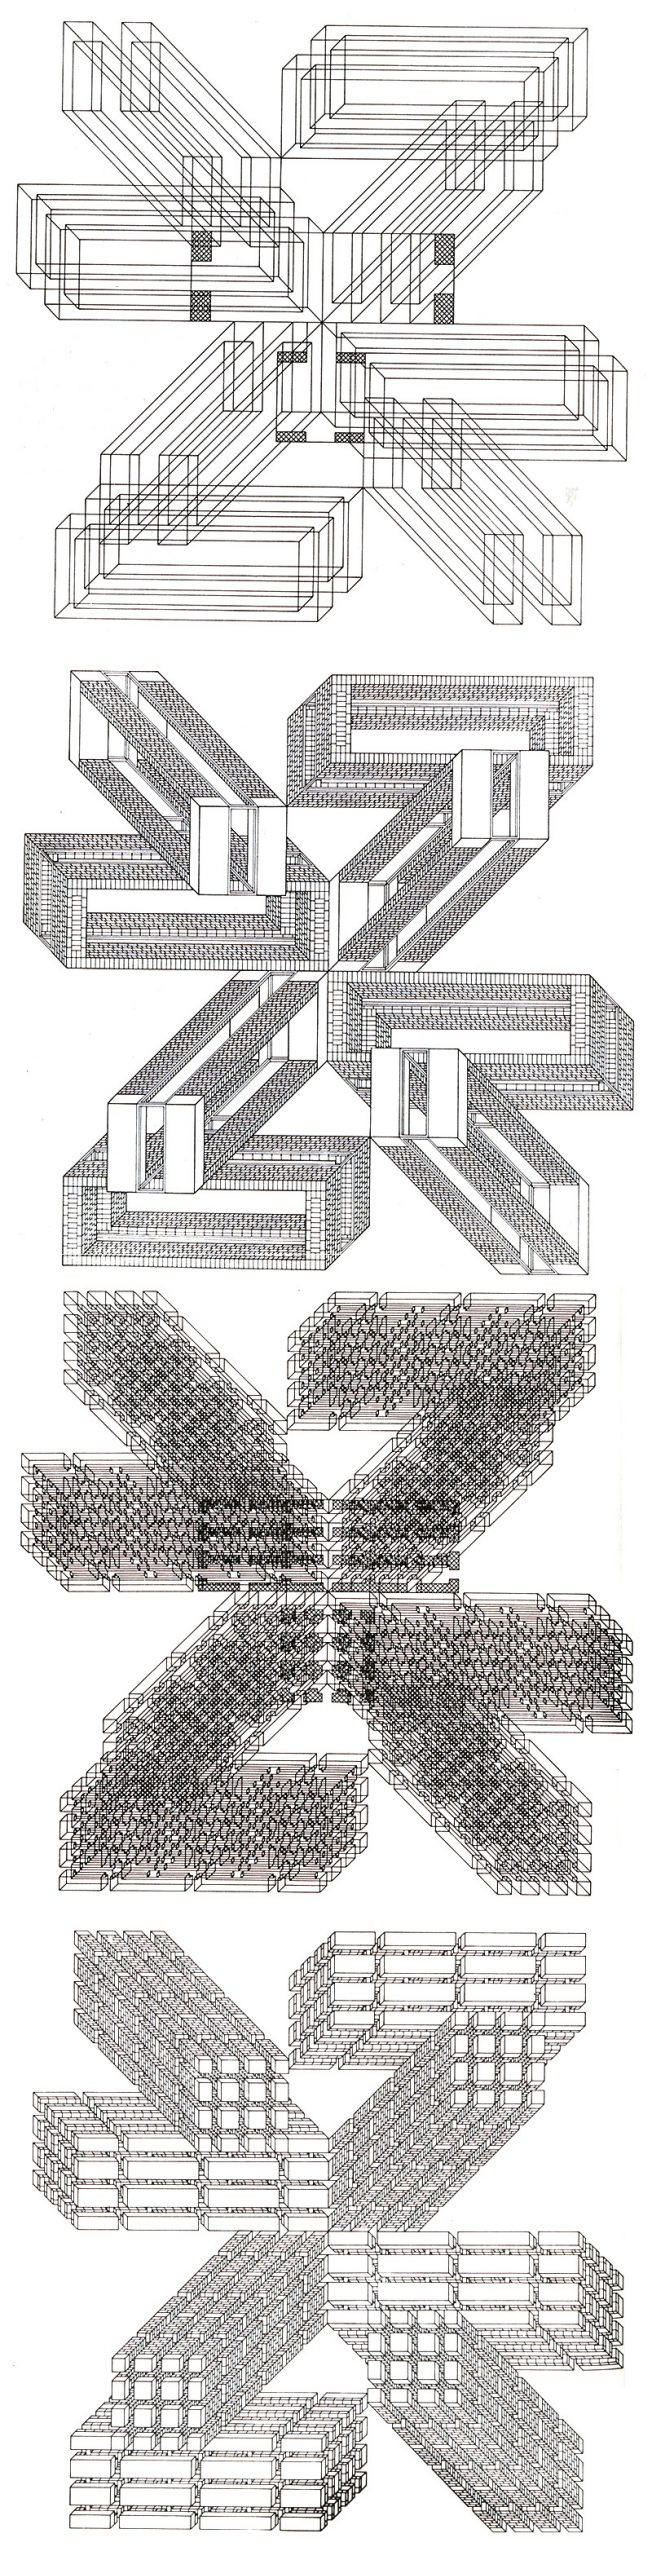 Stanley Tigerman and GL Crabtree Structures Linked Form 2